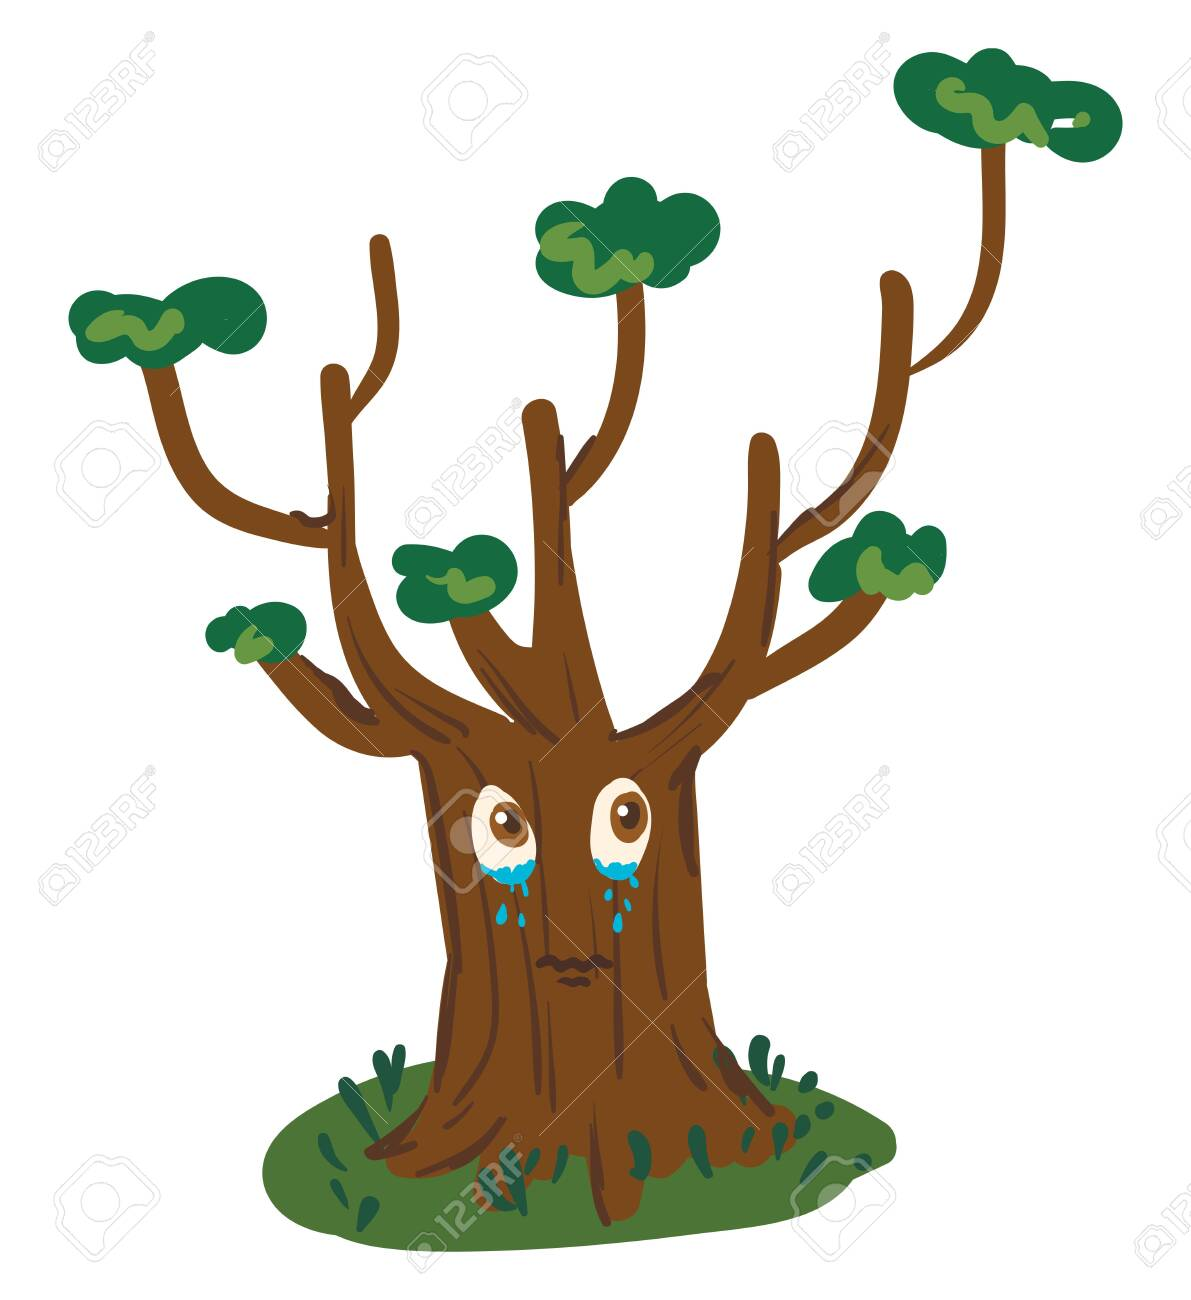 A Cartoon Of A Big Tree Crying With Pouring Tears Vector Color Royalty Free Cliparts Vectors And Stock Illustration Image 132787805 Once you have a basic tree, you can start varying your tree types and shapes to create whole at this point, you've finished the outline for your cartoon tree, and it should look really nice. 123rf com